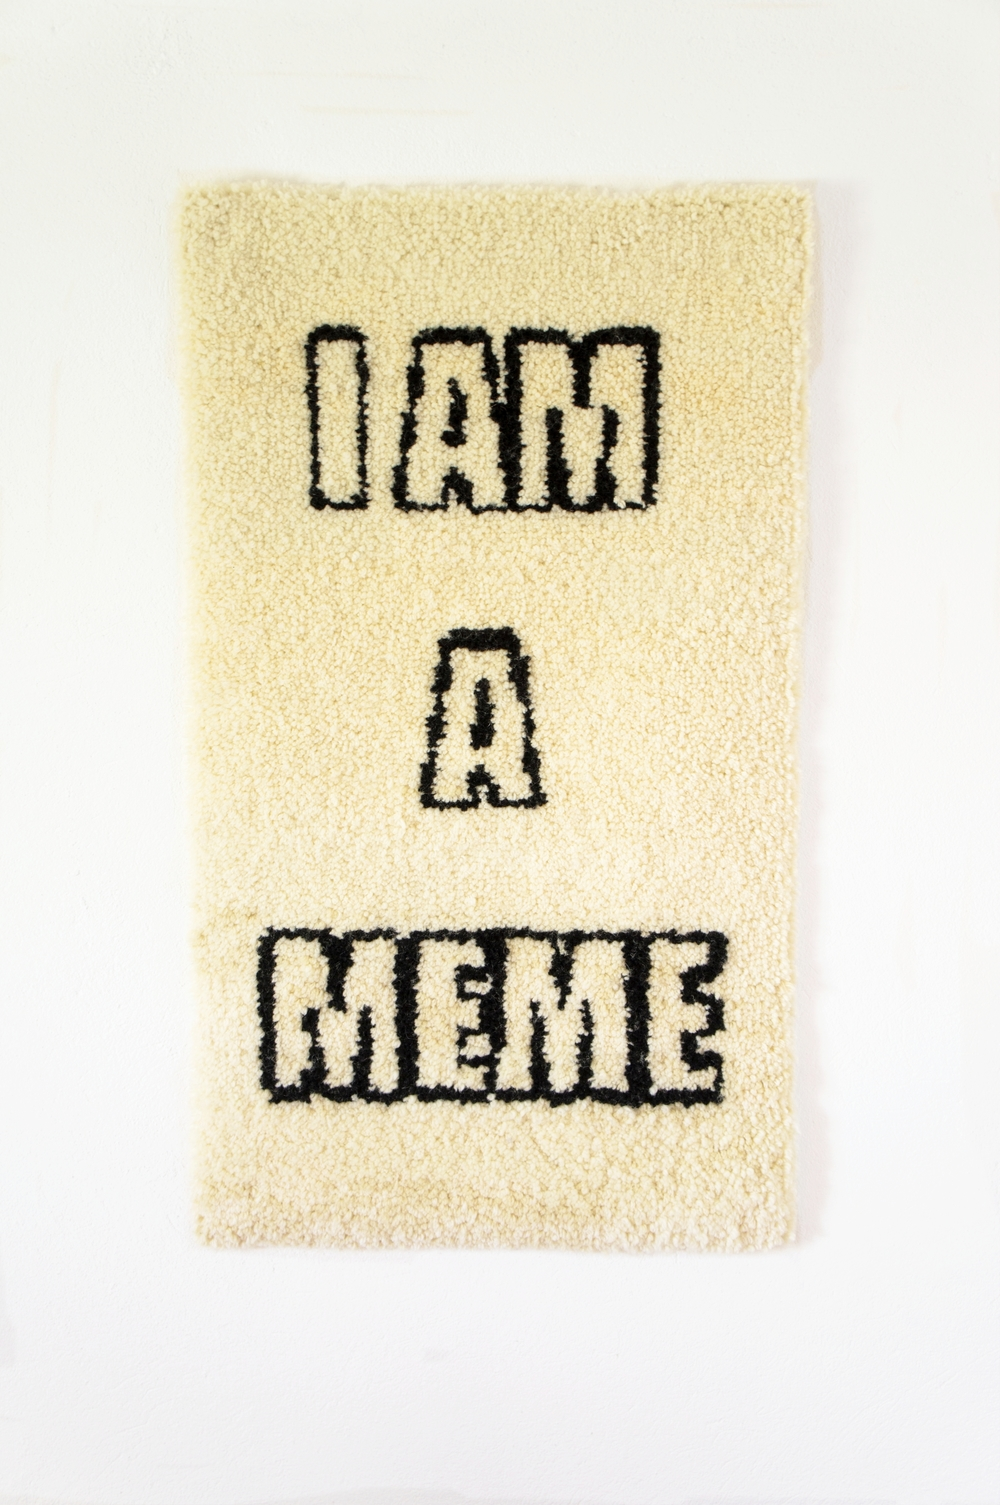 COLL.EO,  STATUS UPDATE: I A MEME,  2016, 60 x 102 cm (23 x 40 inches), wool, cotton, wood.